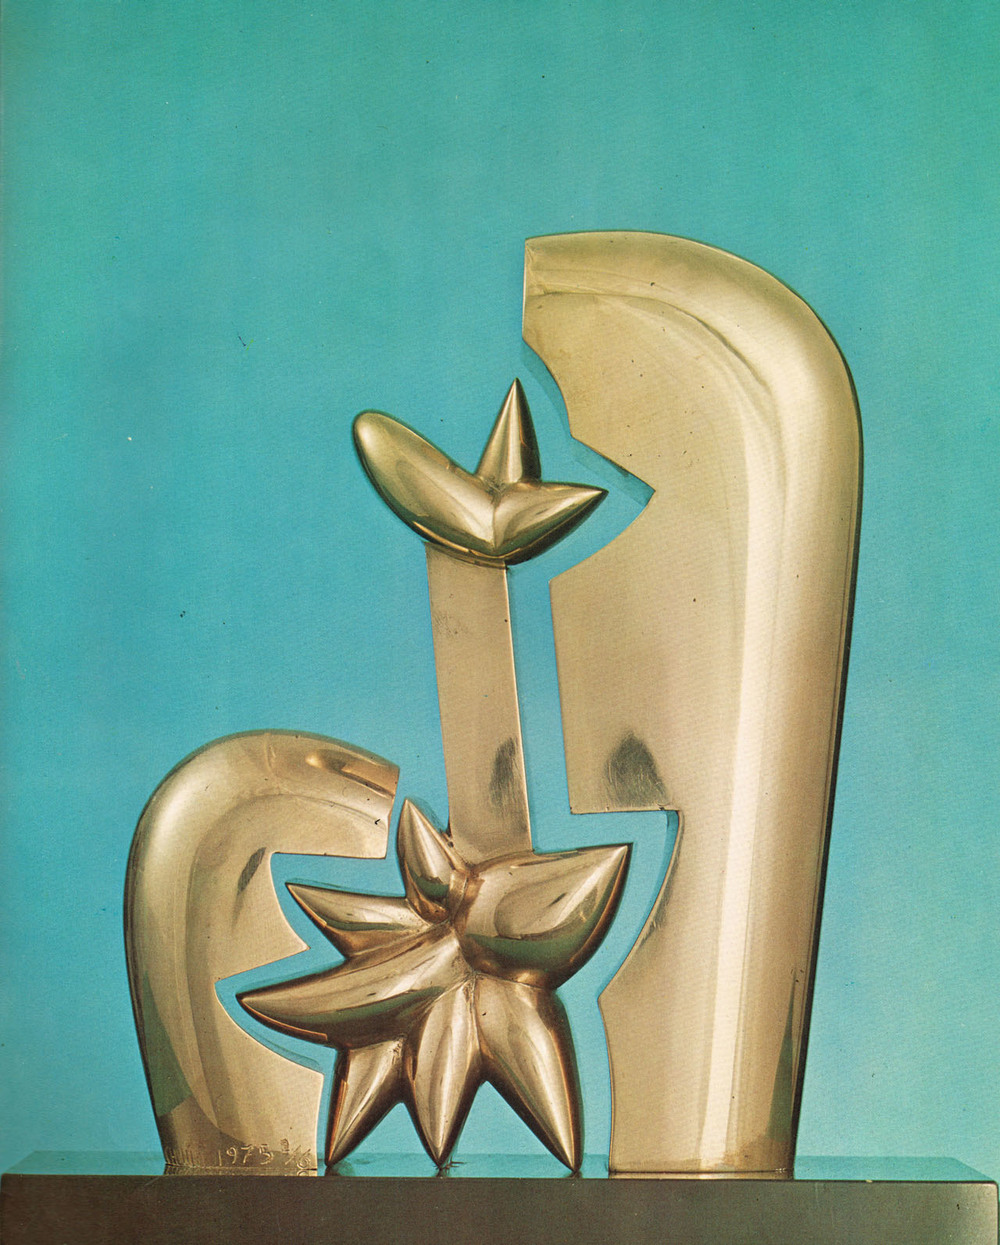 1976 Exhibition %22Nascita%22 - polished bronze - 1975.jpg